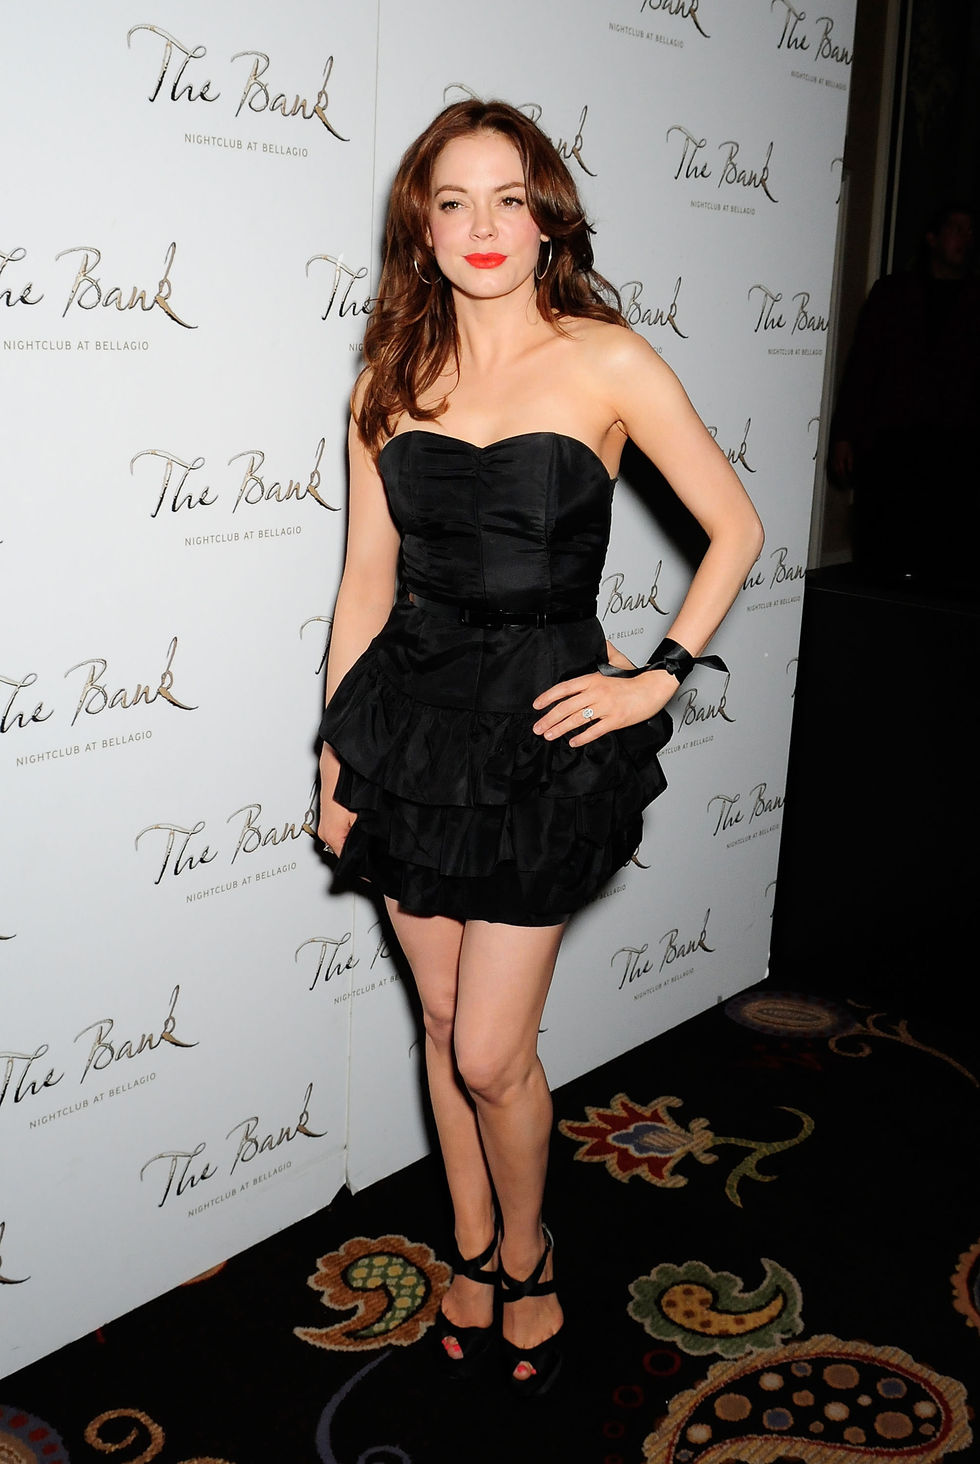 rose-mcgowan-get-out-and-vote-party-at-the-bank-nightclub-in-las-vegas-01